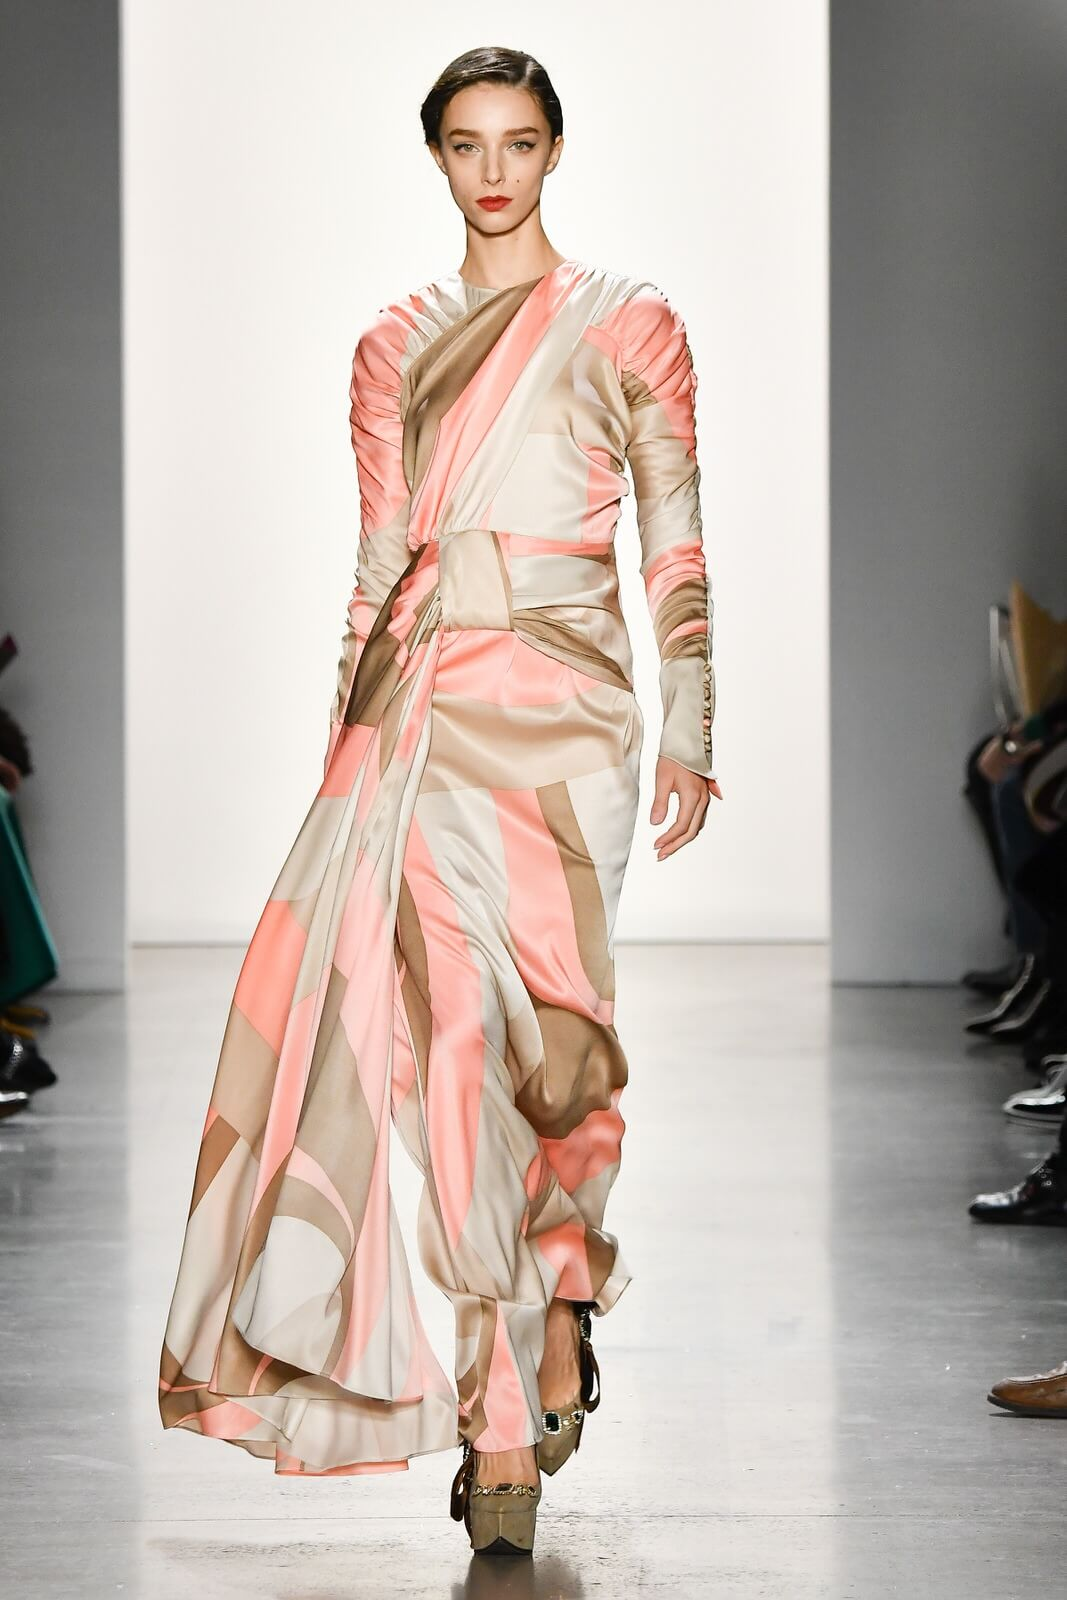 NYFW, #nyfw, new york fashion week, son jung wan, @sonjungwan, #sonjungwan, predupre, @predupre, NYFW the Shows, NYFW F/W 2019, women's apparel, women's fashion, women's fall fashion, women's winter fashion, fashion collection, fall fashion trends, winter fashion trends, #runway, #runwaymodel, Son Jung Wan F/W 2019, #nyc, #runway, fall trends 2019, fall style 2019, winter trends 2019, winter style 2019